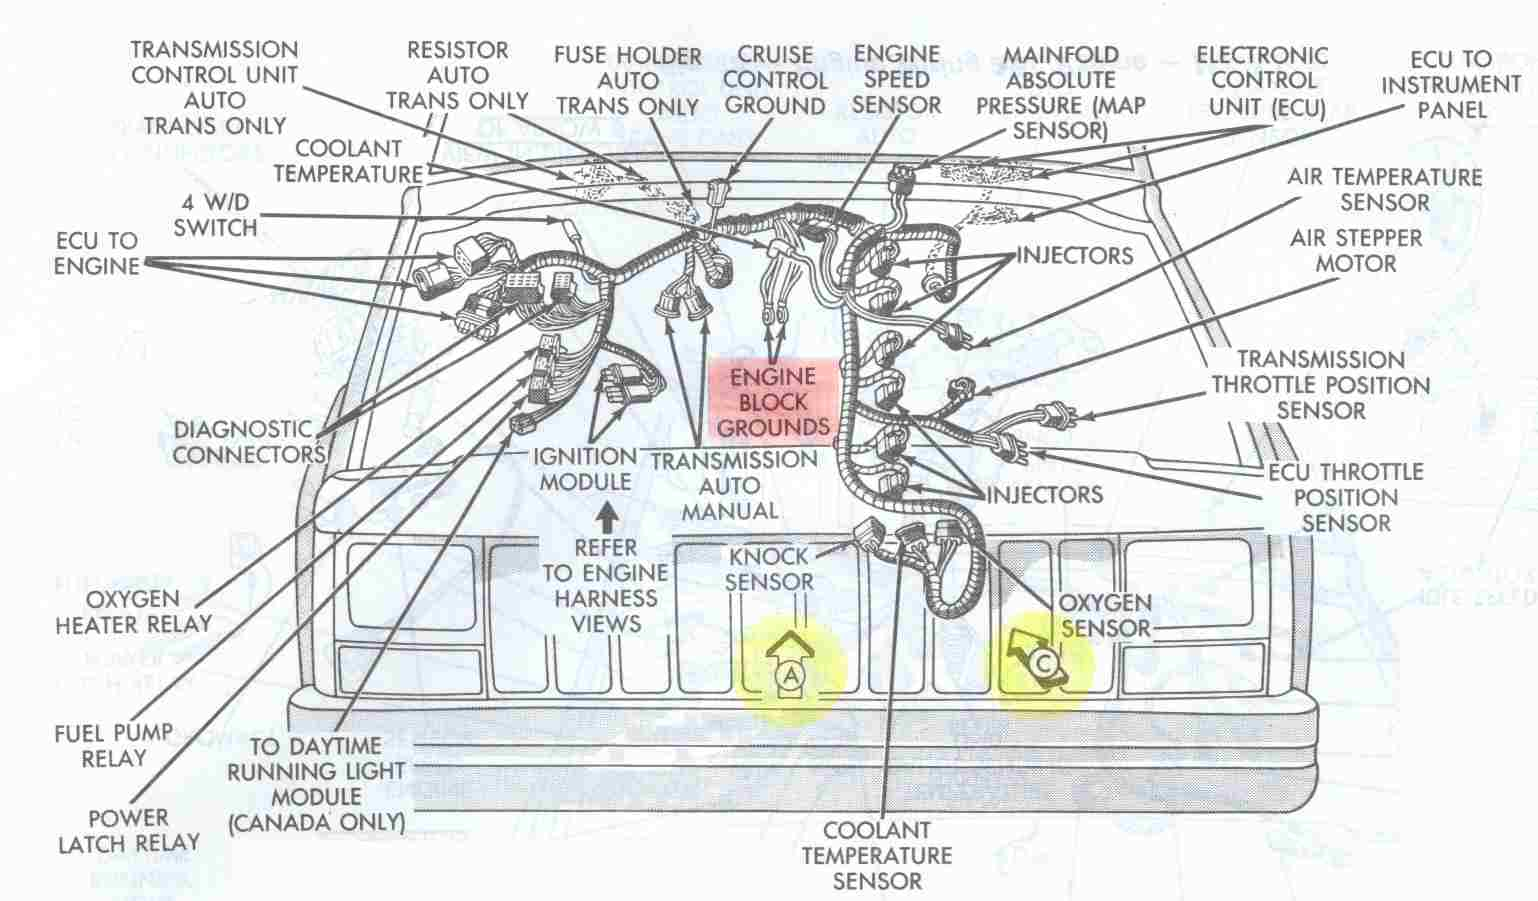 Electrical_Engine_Ground_Points_Overview jeep cherokee electrical diagnosing erratic behavior of engine 2001 jeep cherokee wiring harness at creativeand.co